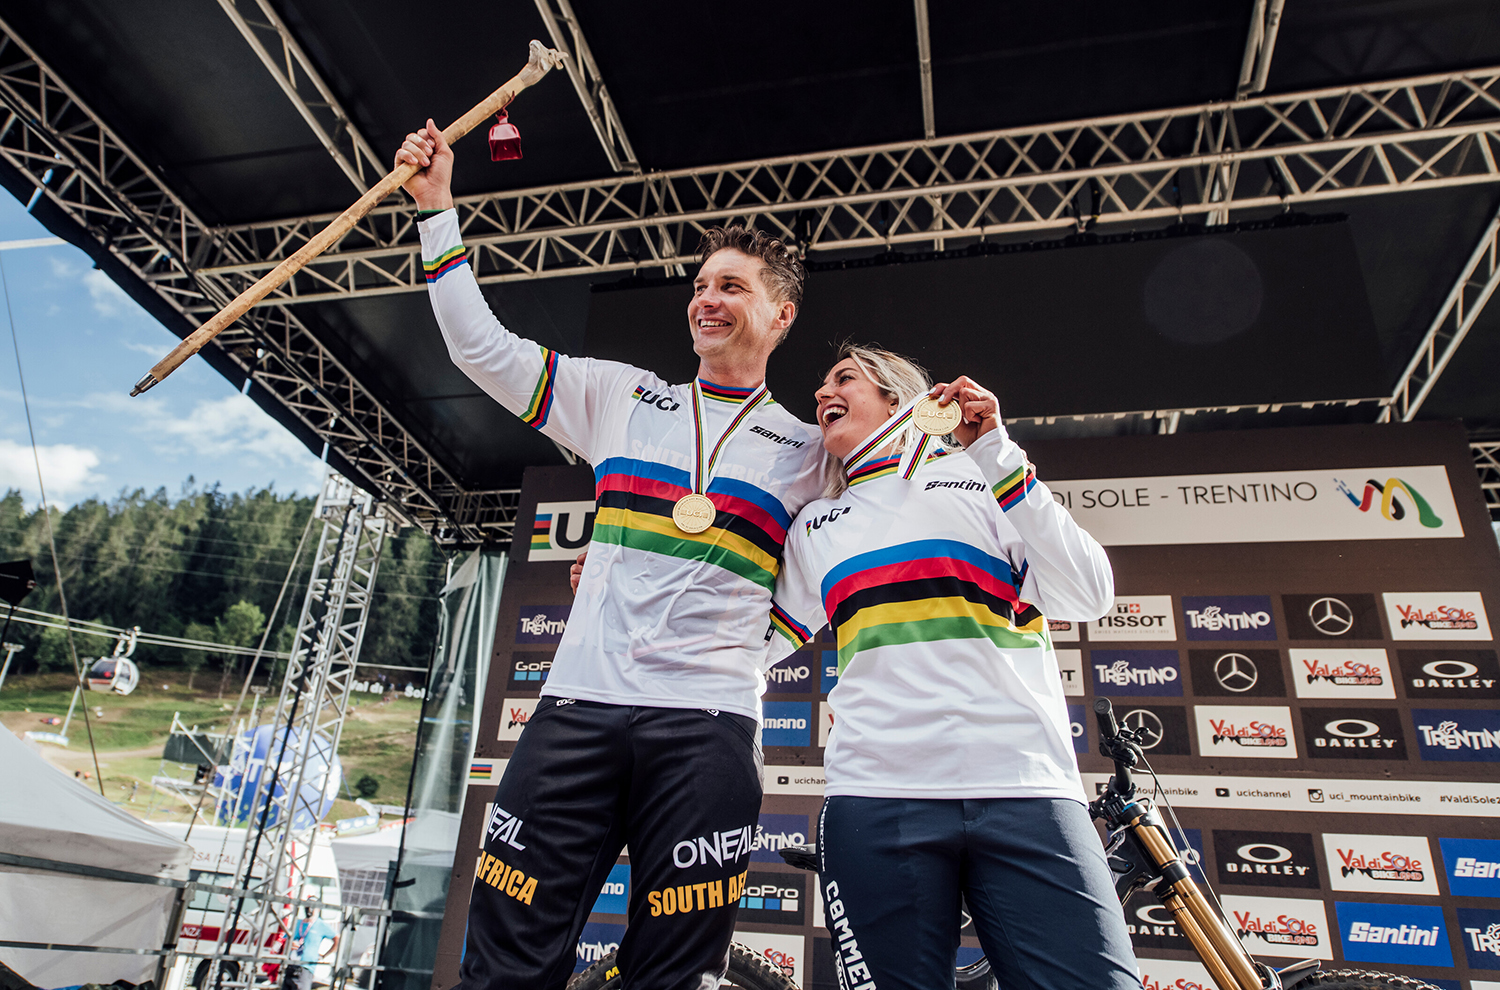 The last few weeks have been packed with outstanding DH racing, so Noah Bodman and David Golay sat down to talk about all the action at World Championships and the Lenzerheide World Cup. They also discuss a whole bunch of new suspension that we've been testing from Fox, including the updated 34 fork and both the new DHX and Float X rear shocks.